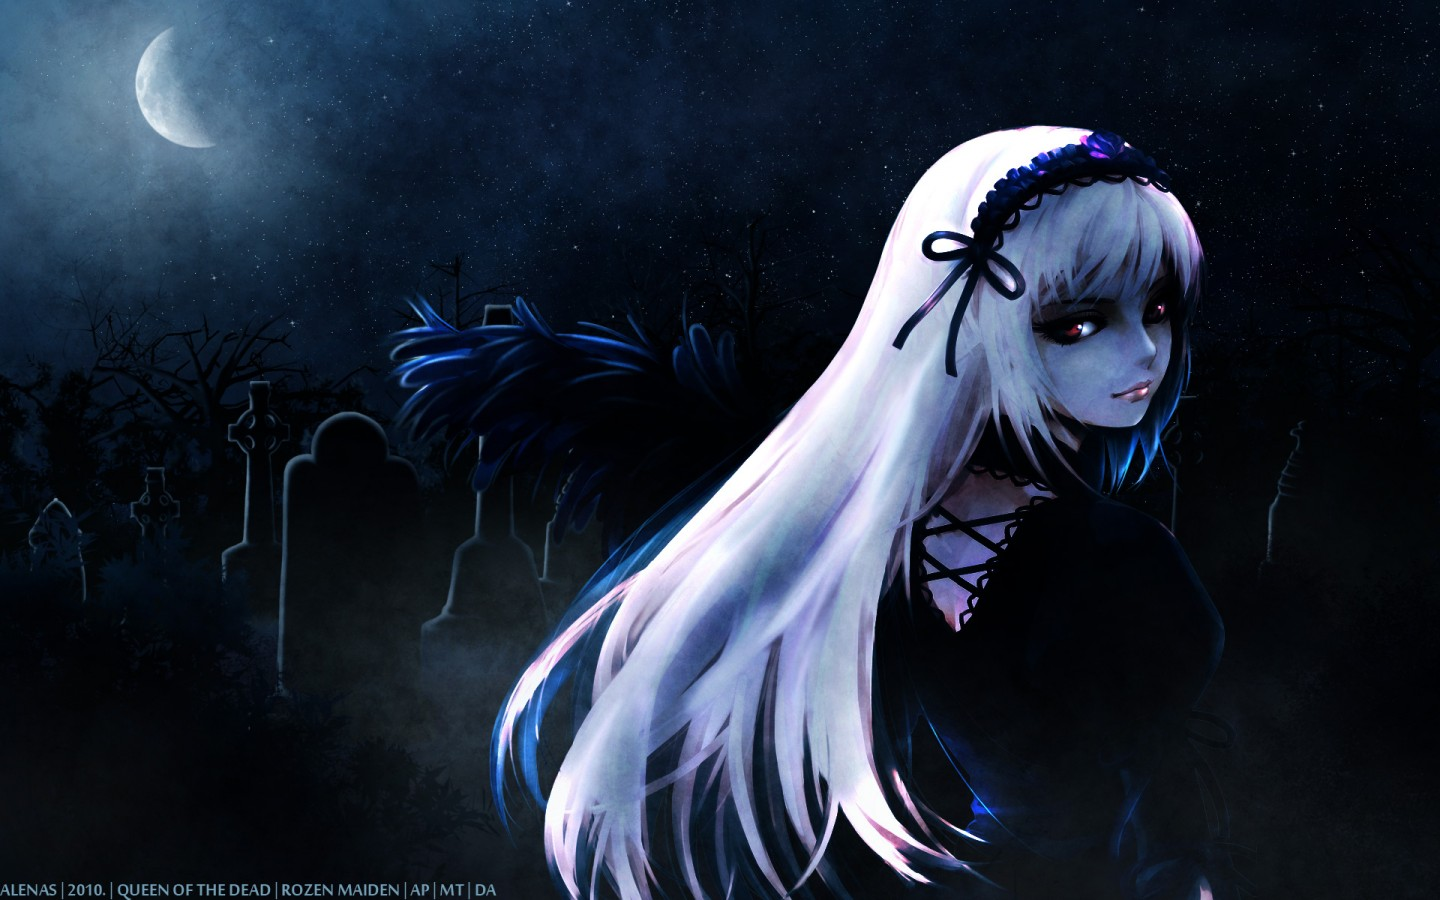 dark anime wallpapers hd, desktop backgrounds, images and pictures